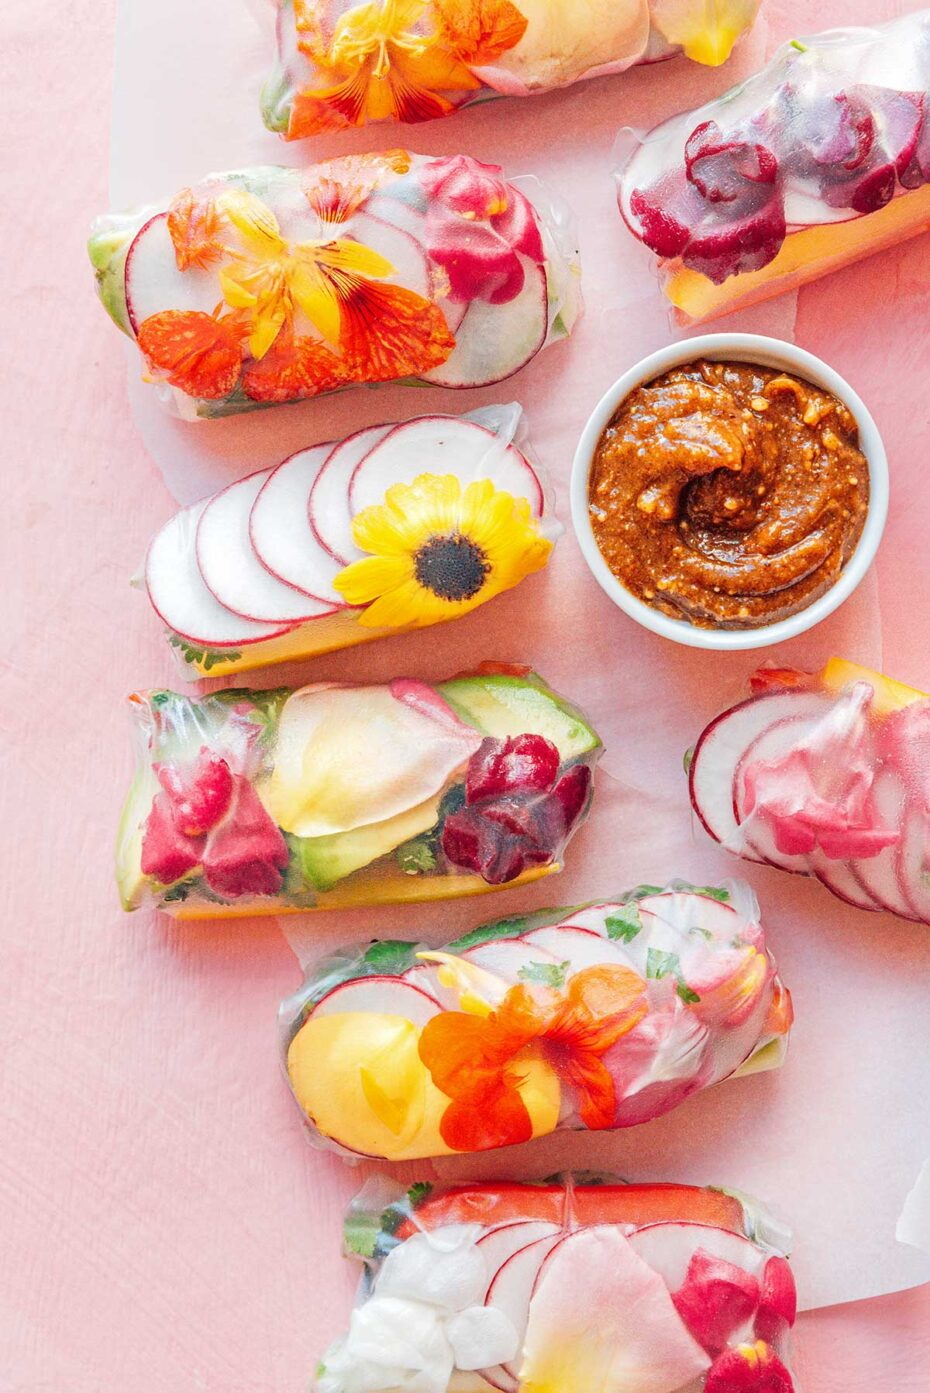 Colorful rice paper rolls with flowers on a pink surface